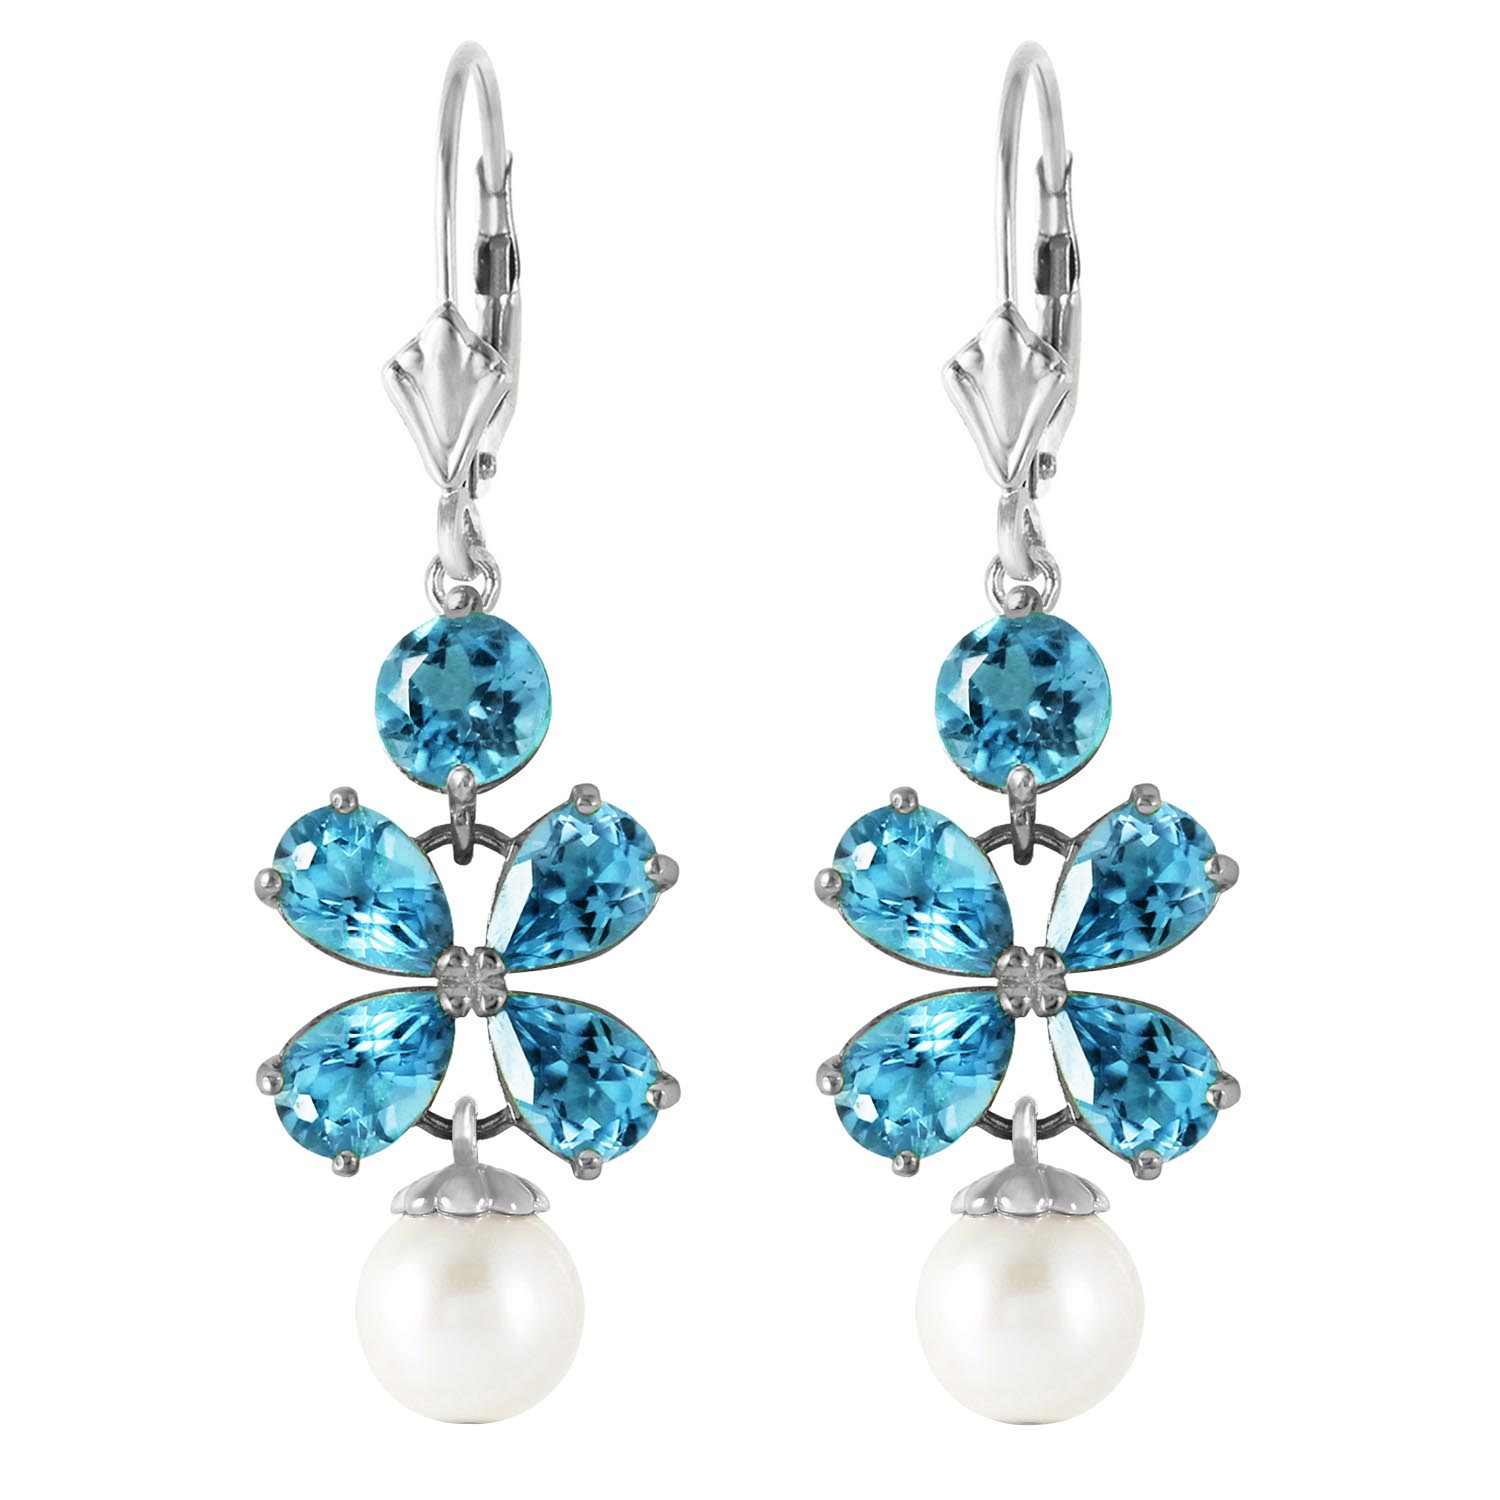 Blue Topaz and Pearl Blossom Drop Earrings 6.28ctw in 9ct White Gold